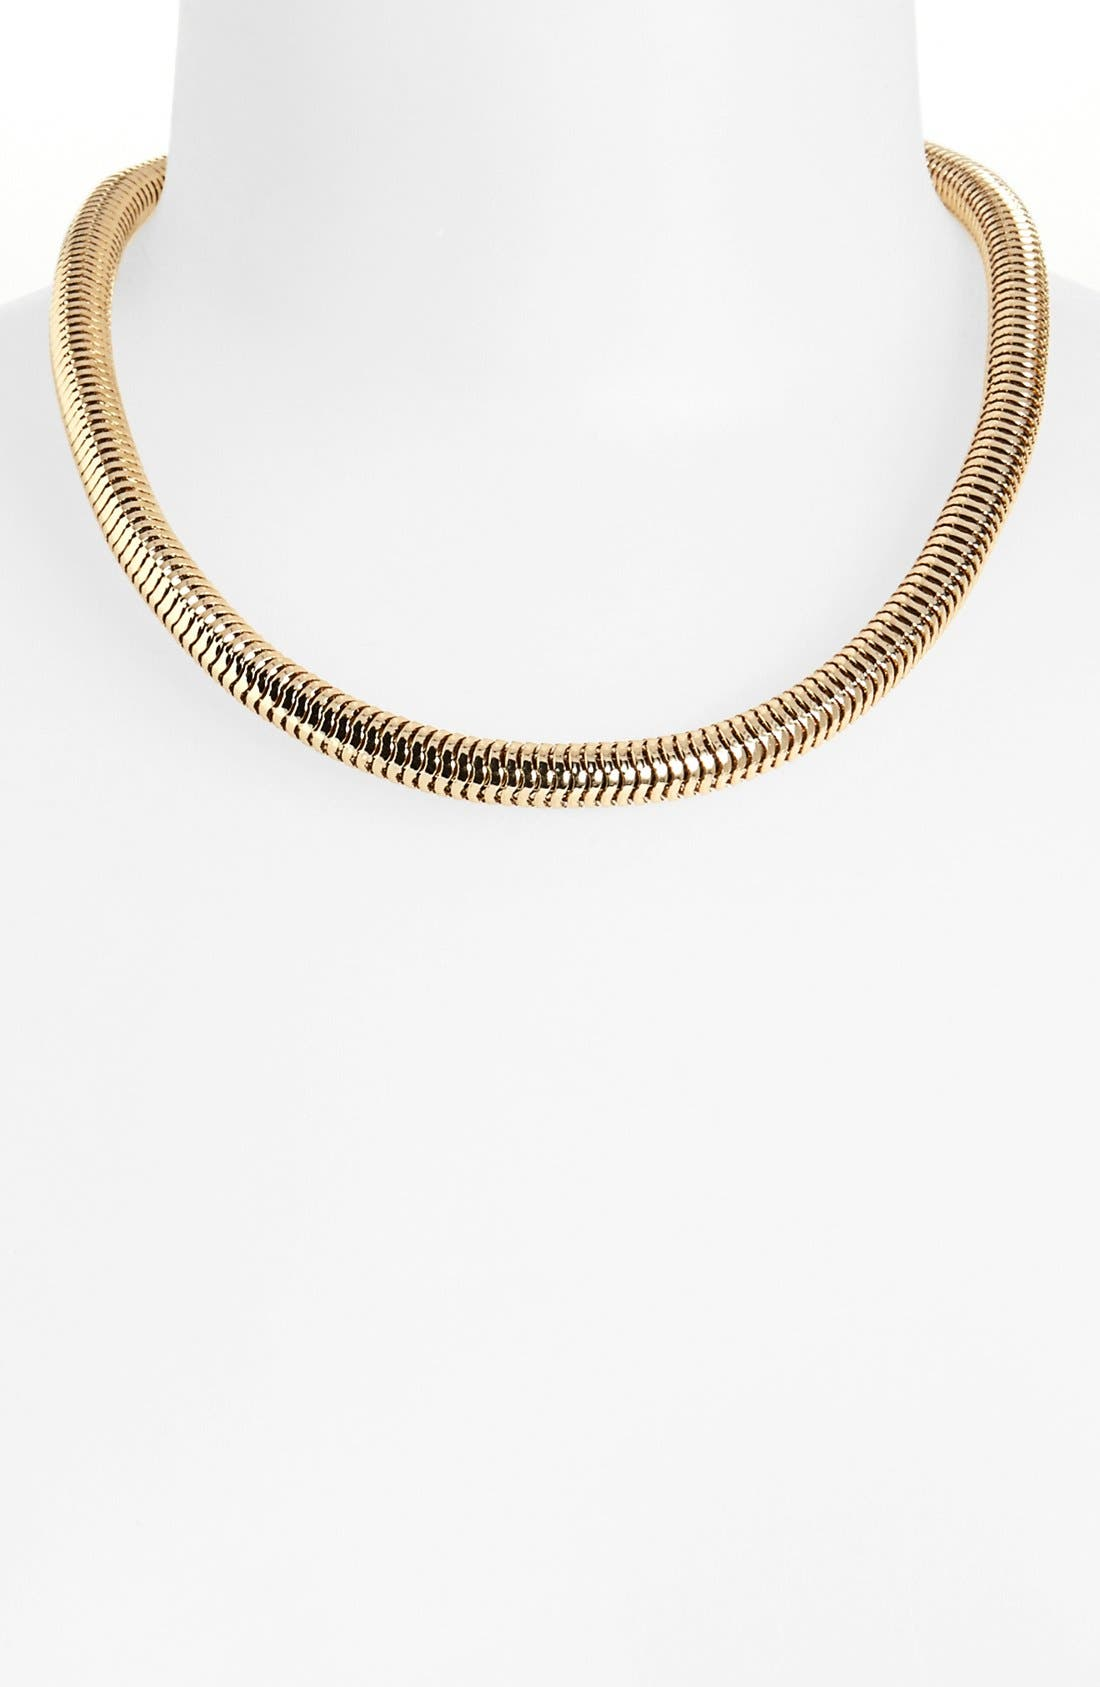 Alternate Image 1 Selected - Topshop Snake Chain Collar Necklace